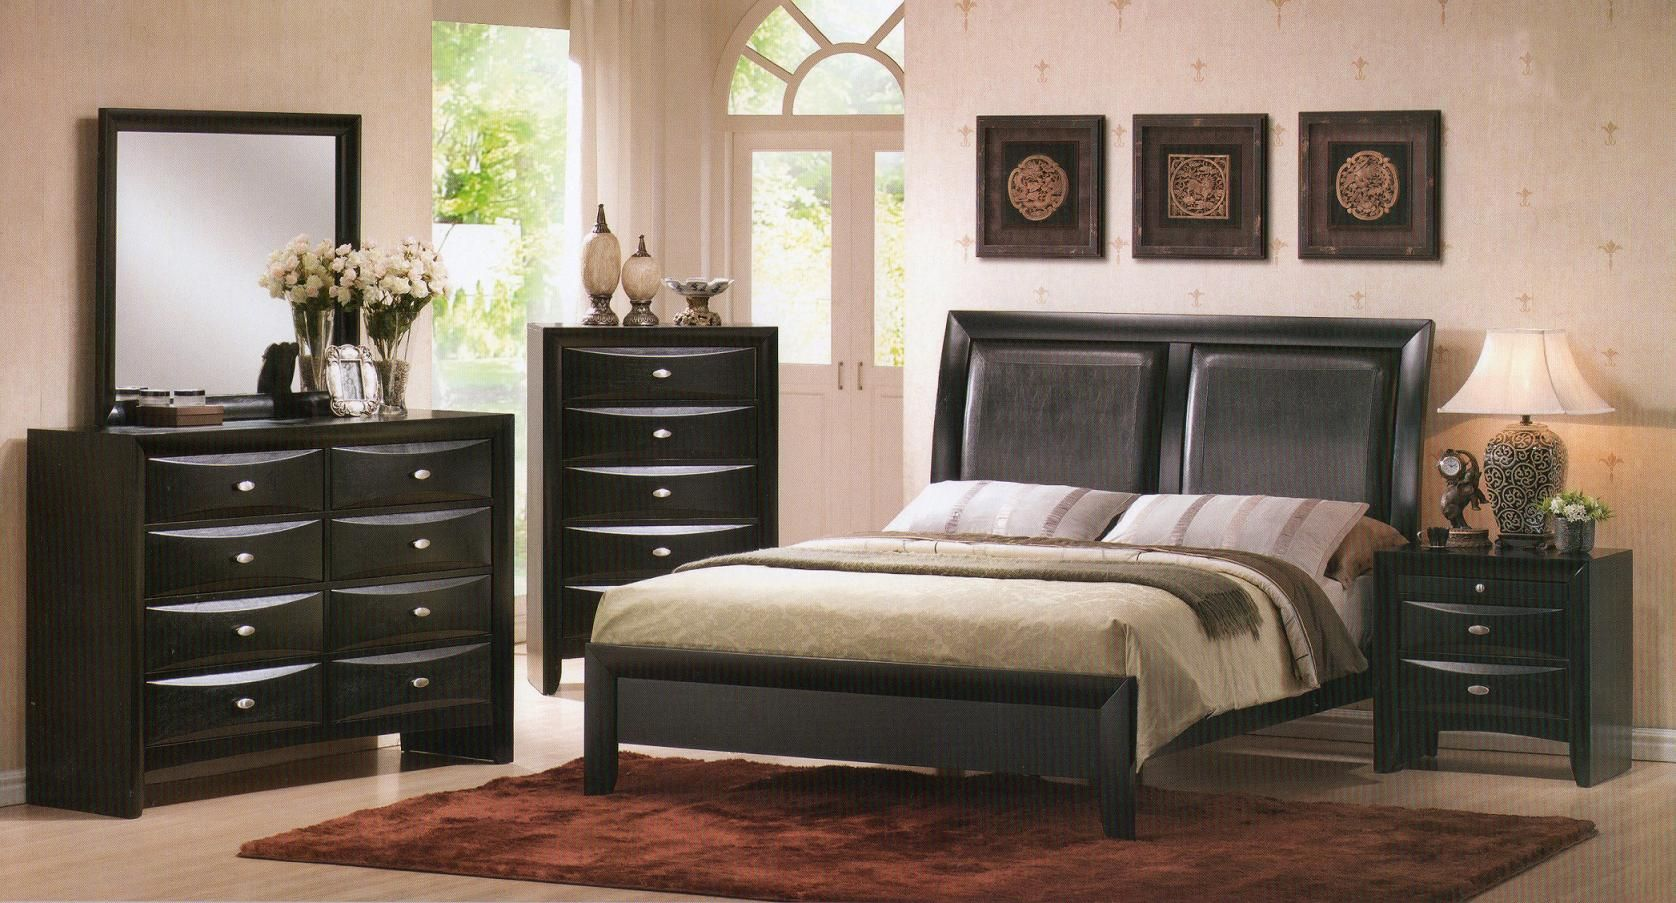 Blemery Bedroom Set This Contemporary Set Will Become A